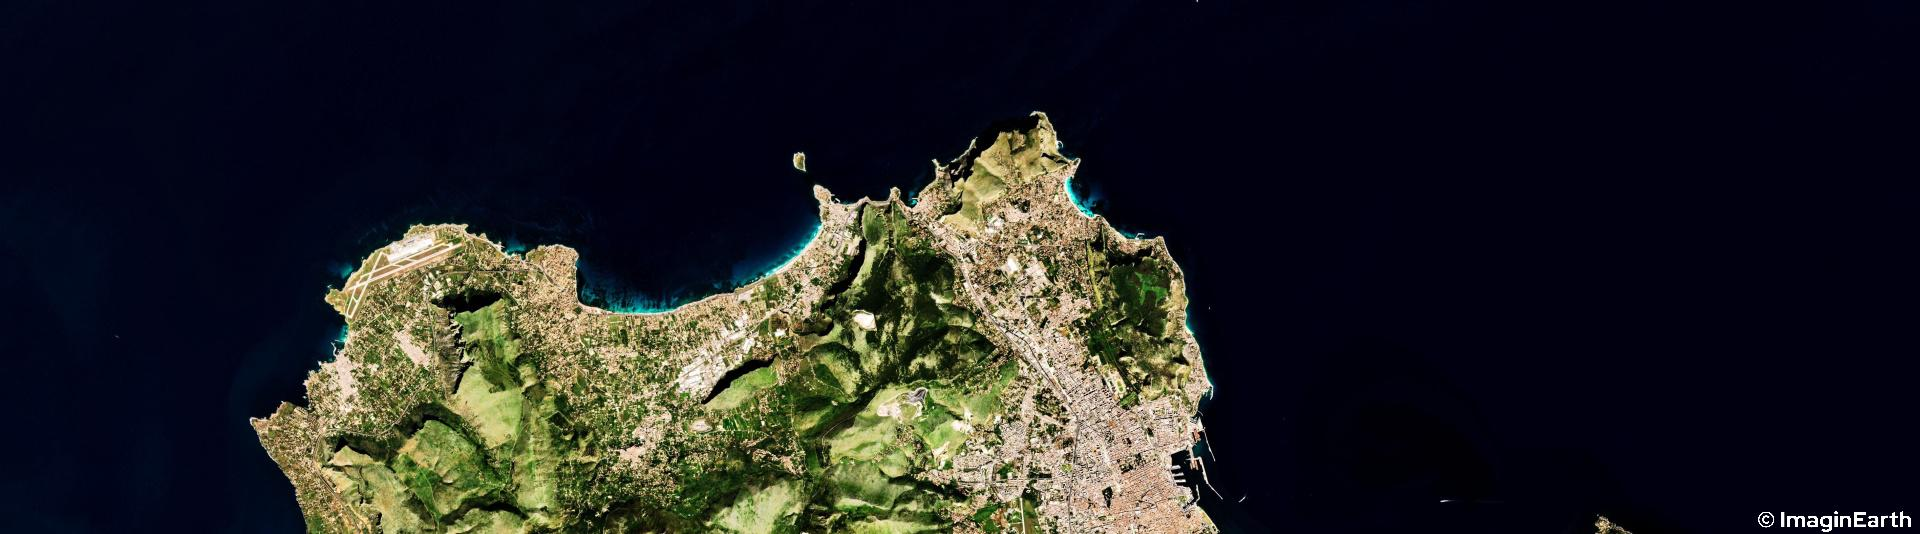 photo satellite, Italie